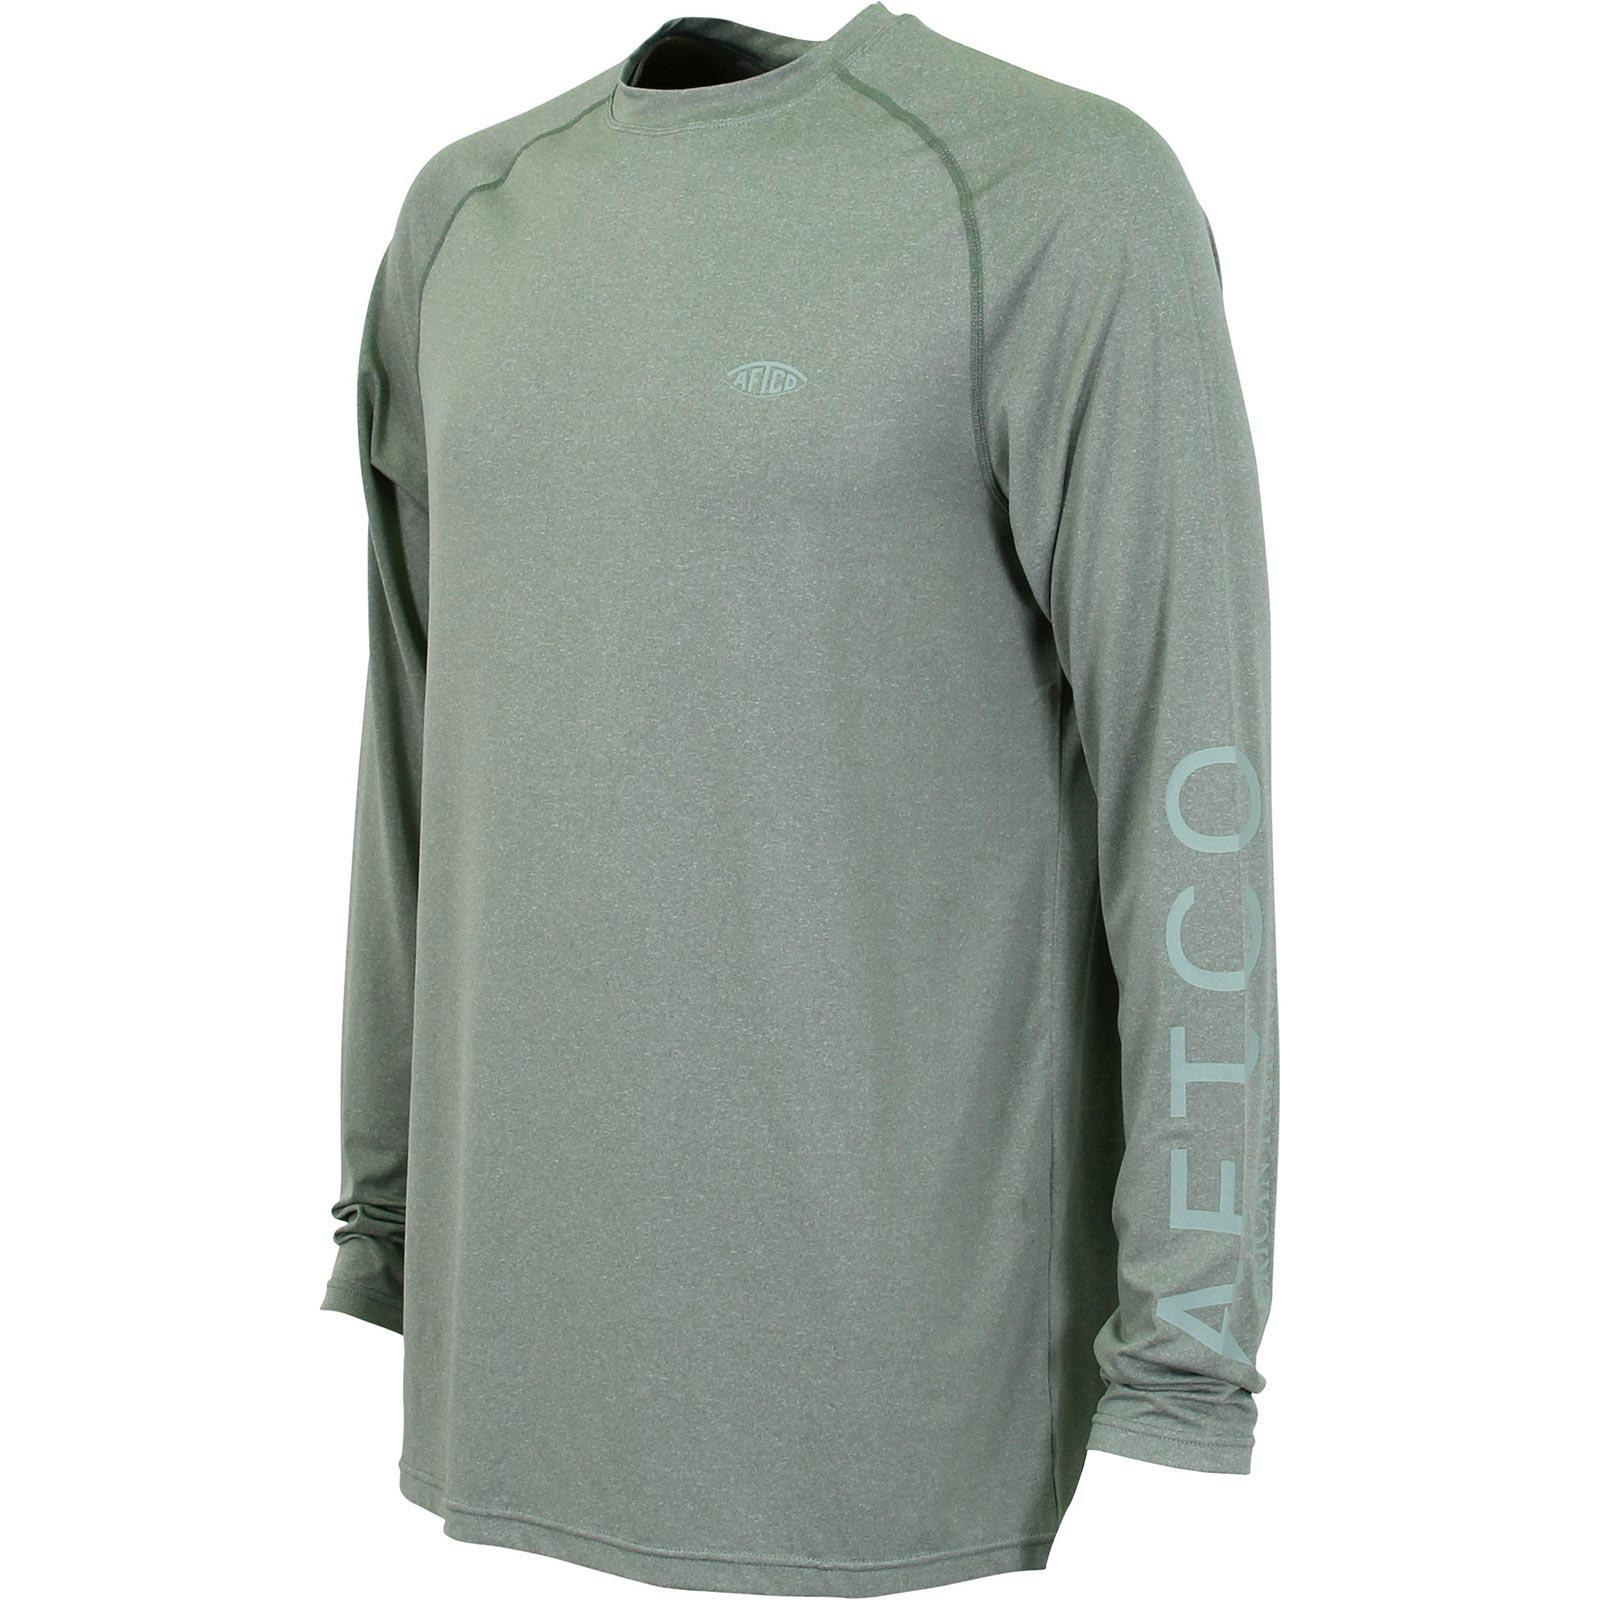 AFTCO Men's Samurai 2 Long Sleeve Performance Shirt